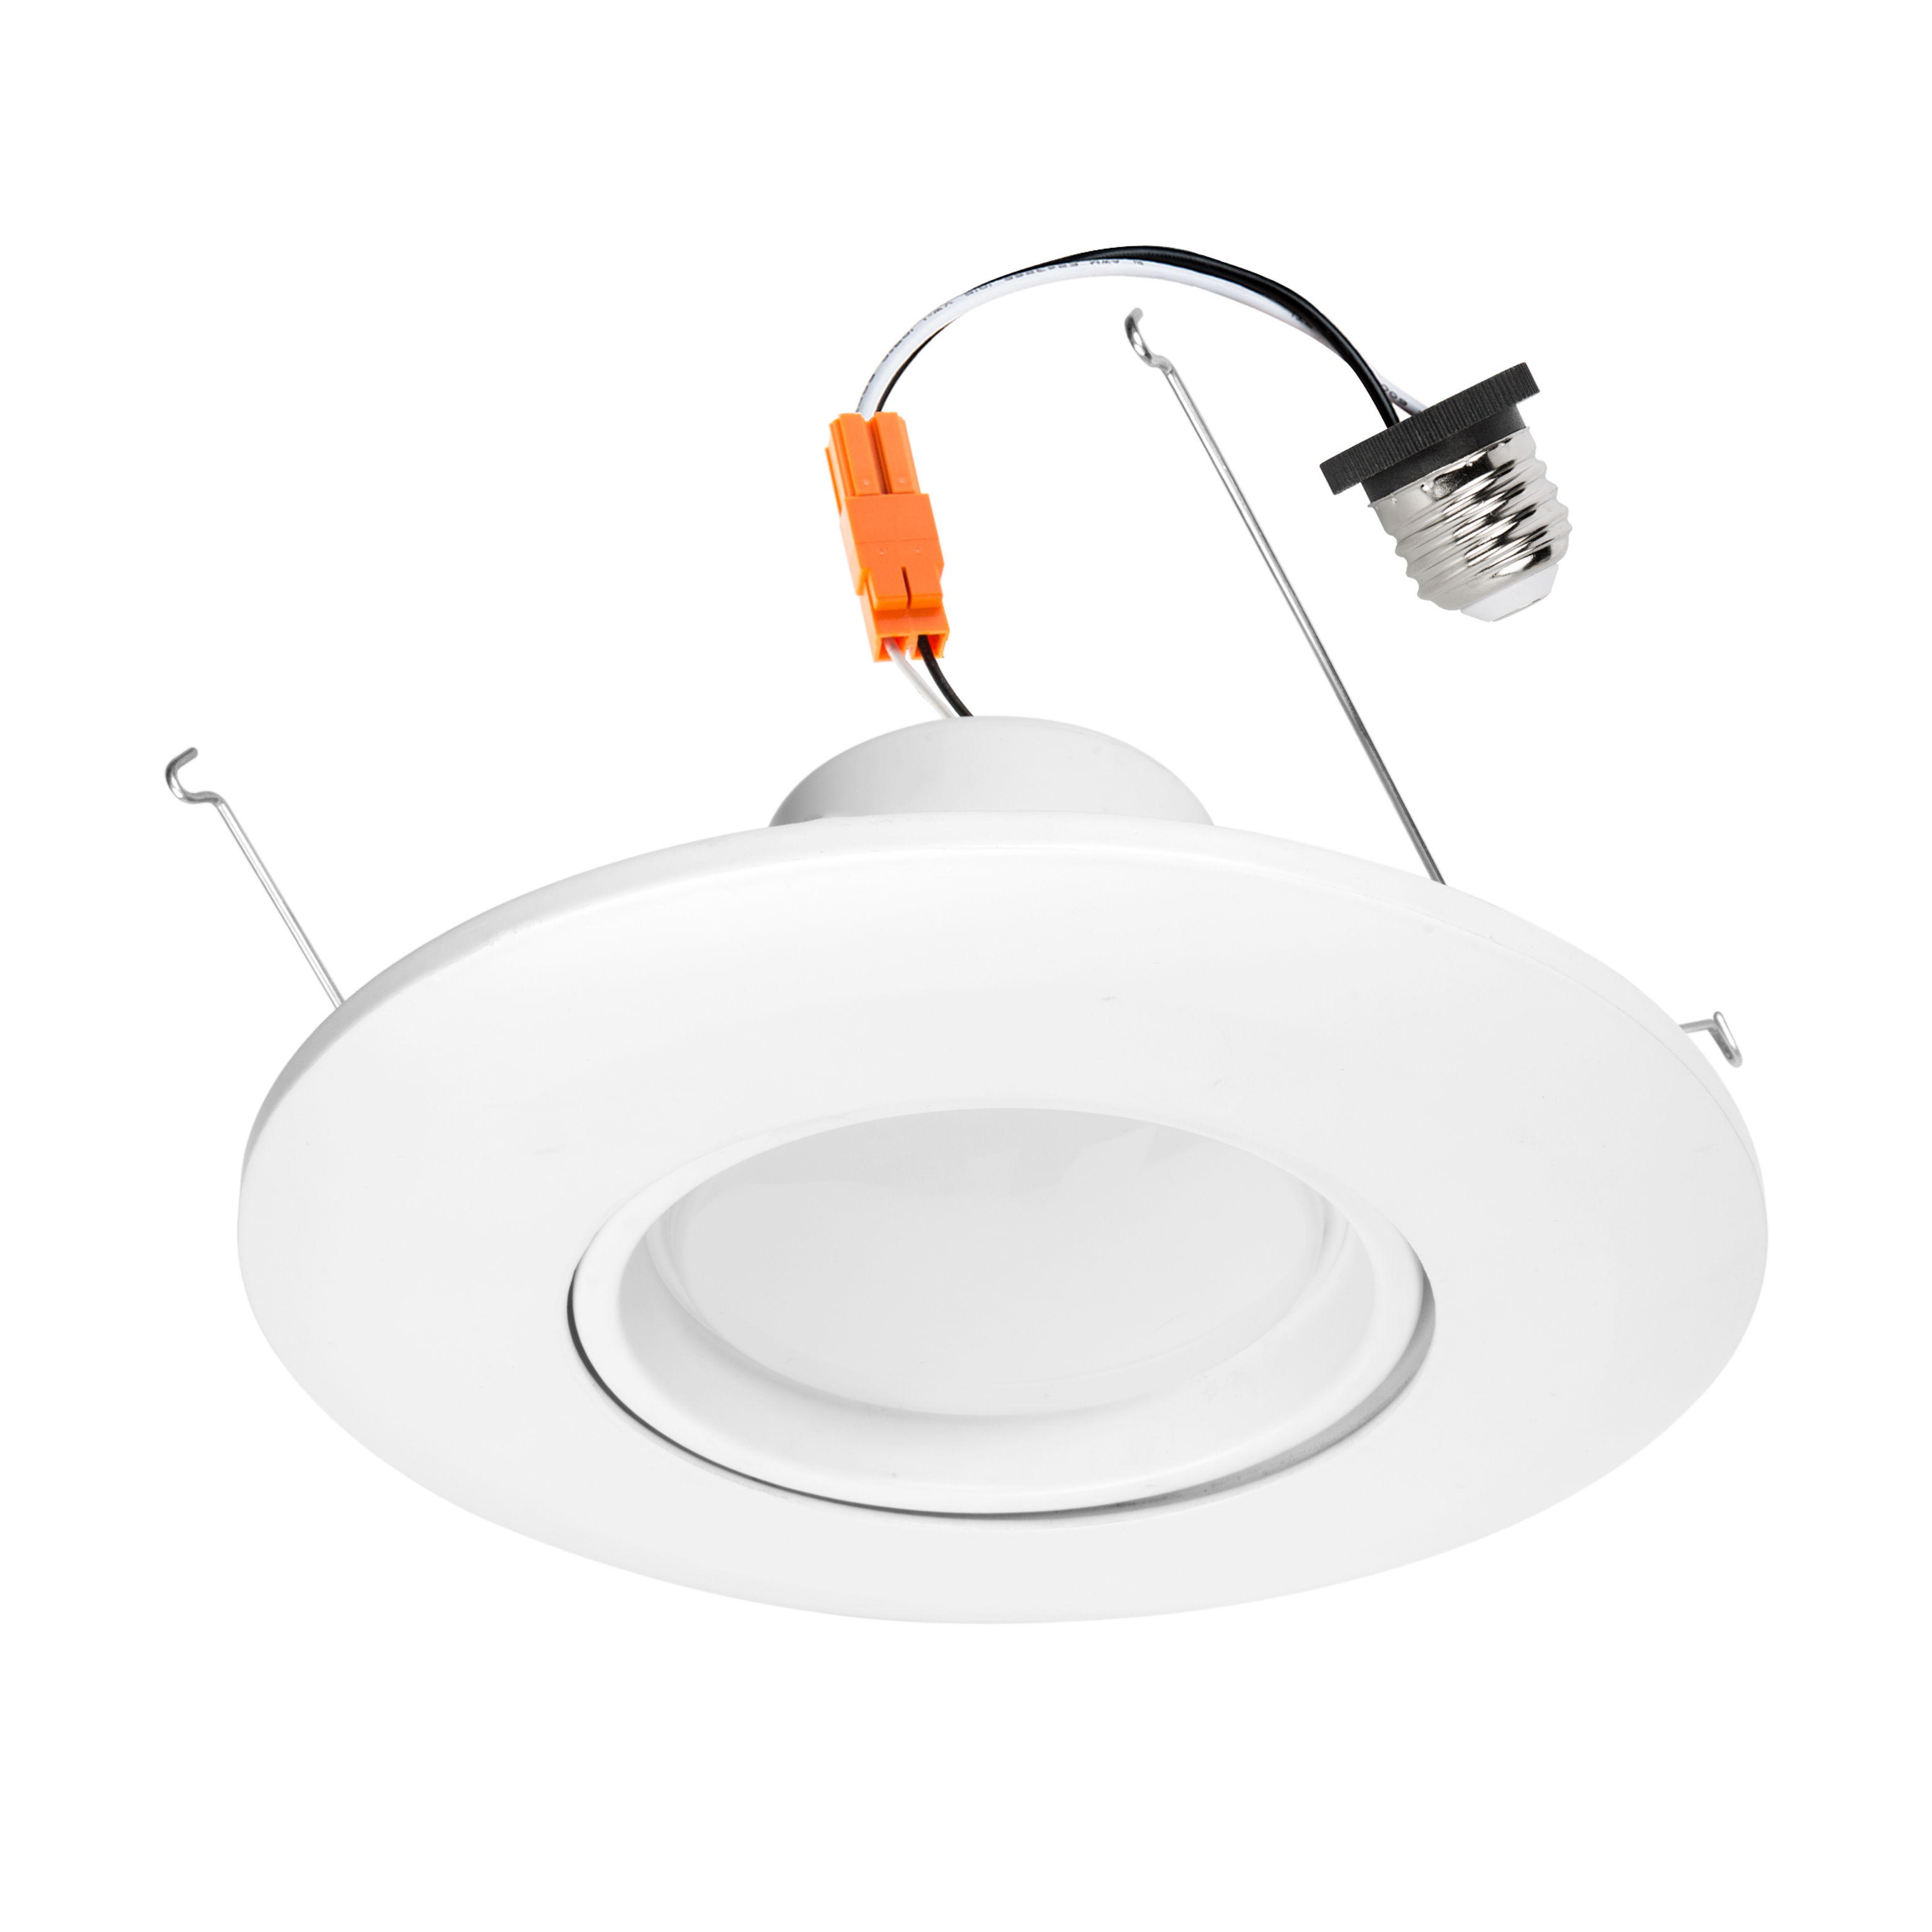 led recessed lighting kit for 5 to 6 cans retrofit led downlight w gimbal trim 75 watt equivalent dimmable 1000 lumens